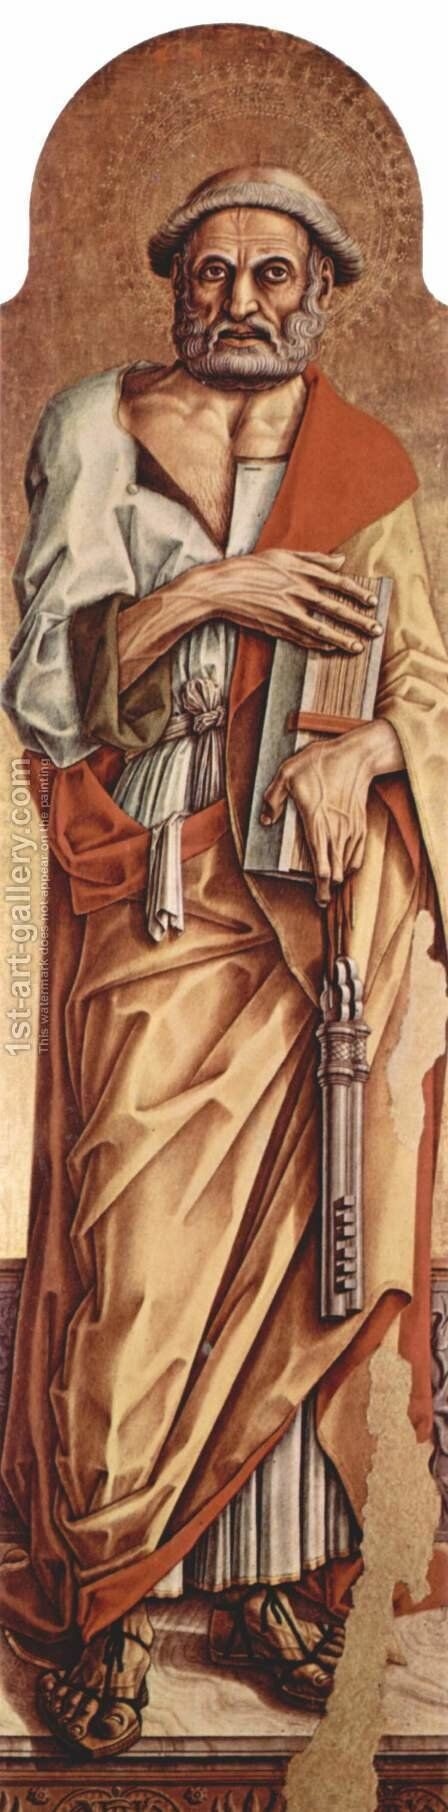 Saint Peter by Carlo Crivelli - Reproduction Oil Painting